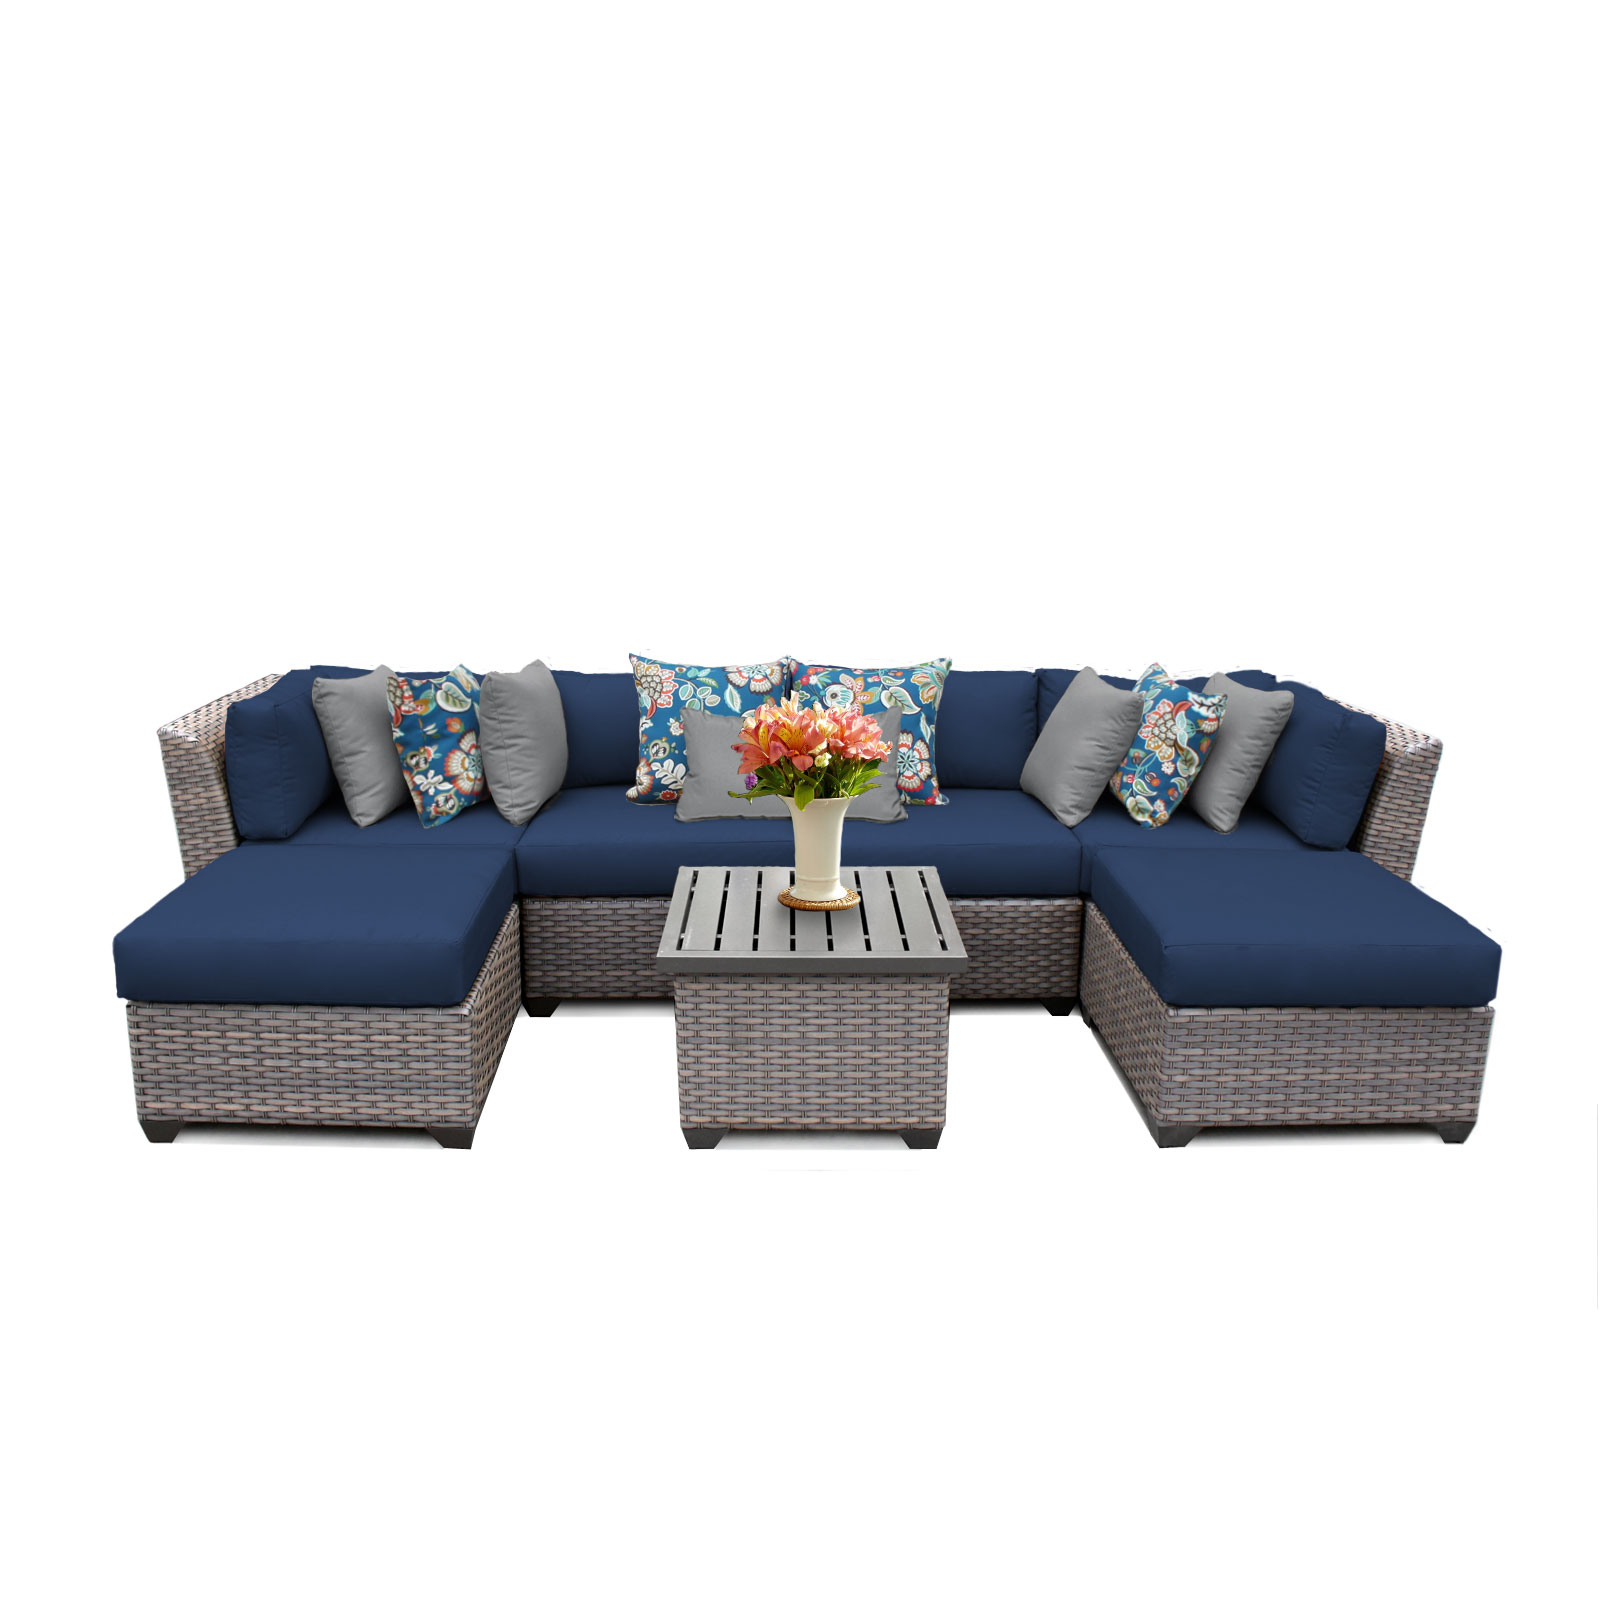 Catalina 7 Piece Outdoor Wicker Patio Furniture Set 07a